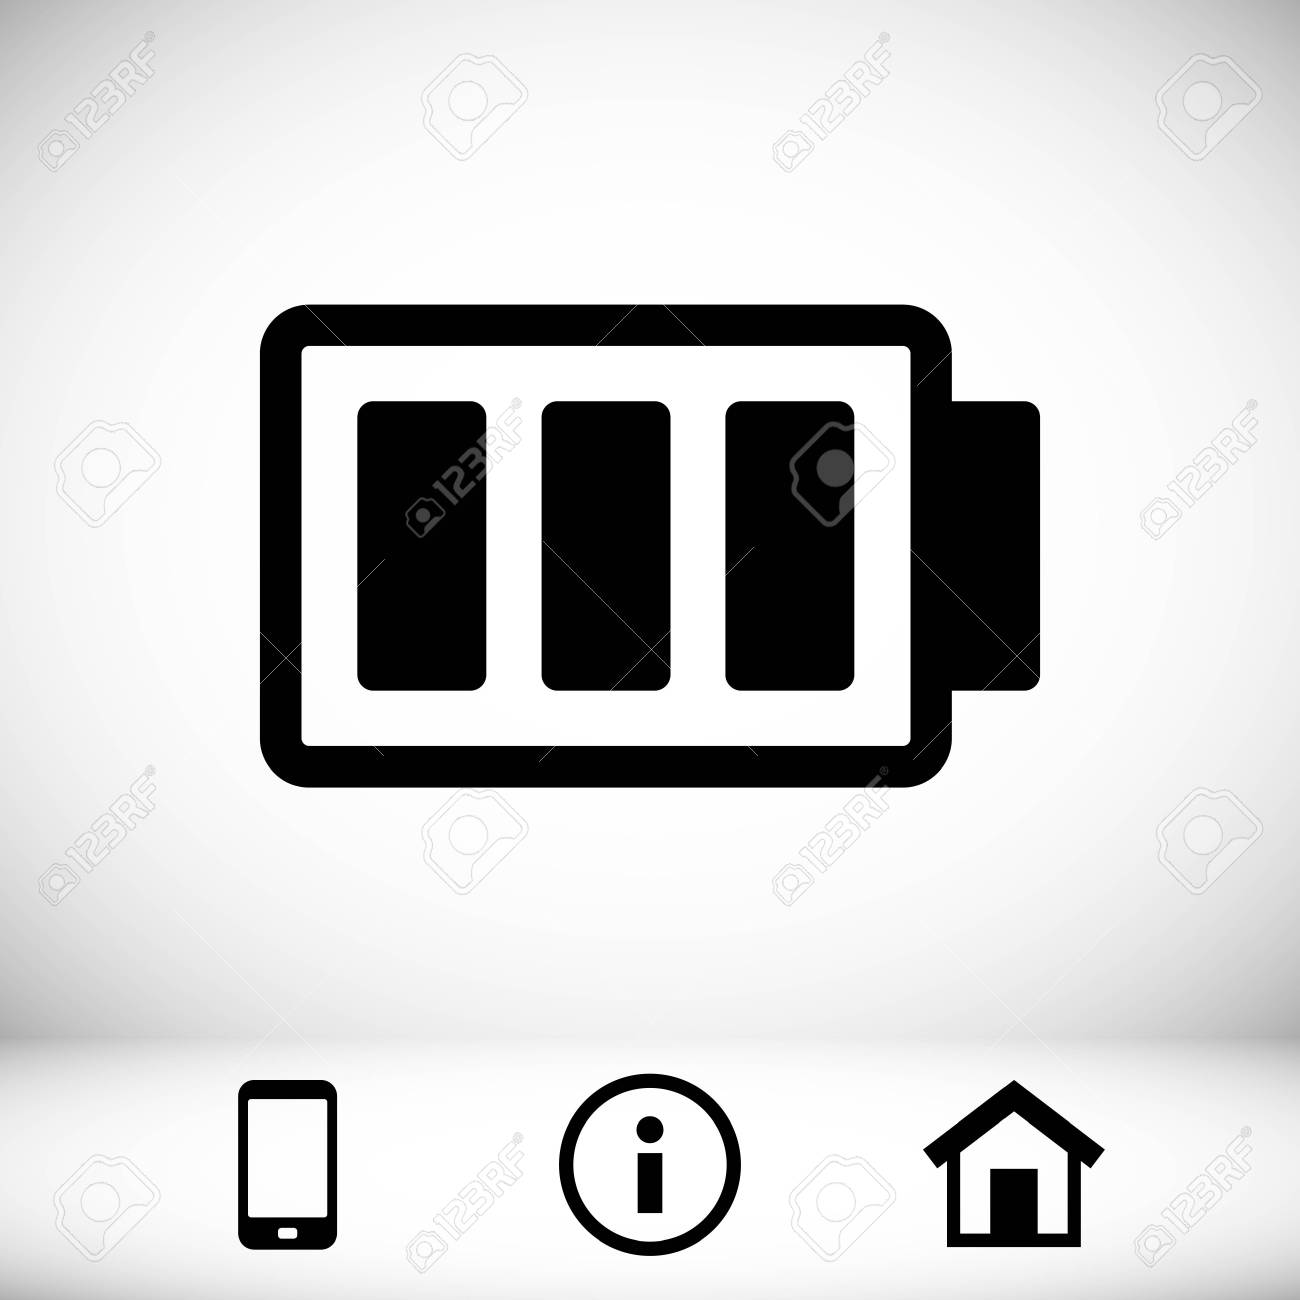 battery vector icon stock vector illustration flat design royalty free cliparts vectors and stock illustration image 77337776 battery vector icon stock vector illustration flat design